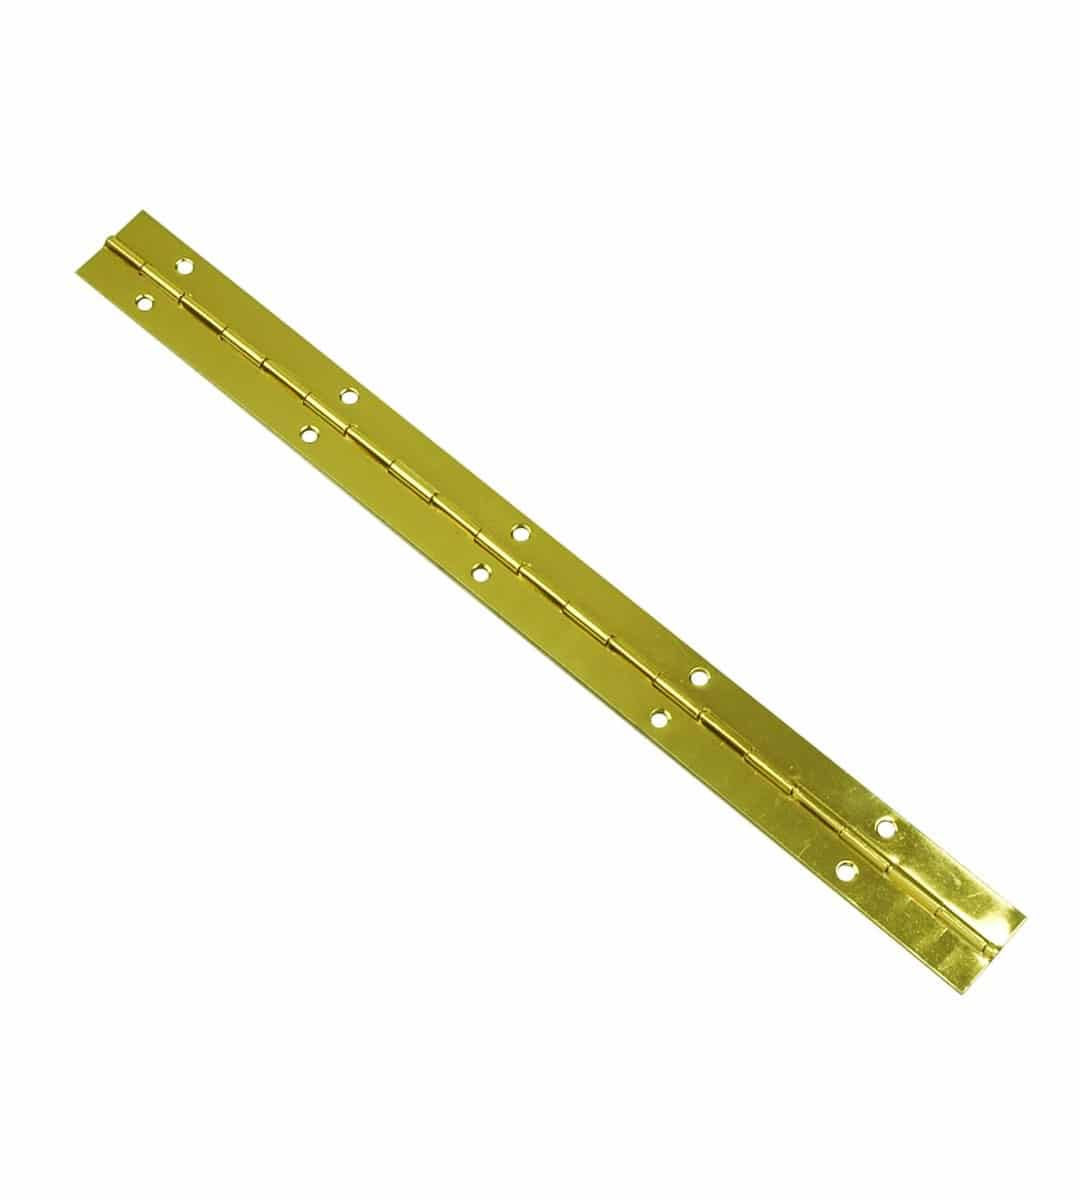 Piano Hinge Continuous Hinge Brass